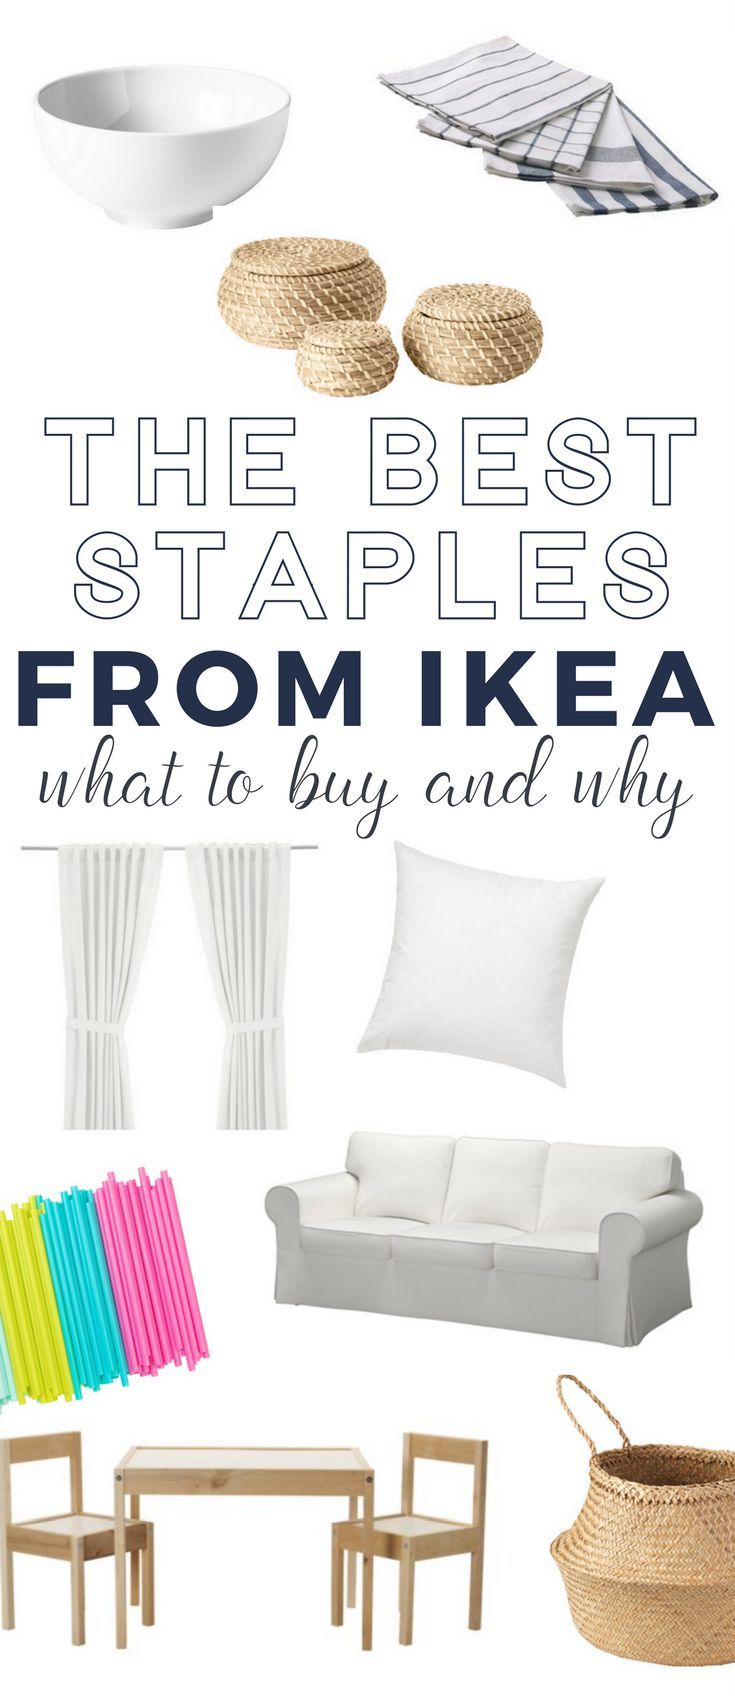 What to Buy at IKEA - a complete list of IKEA staples that everyone should know about!